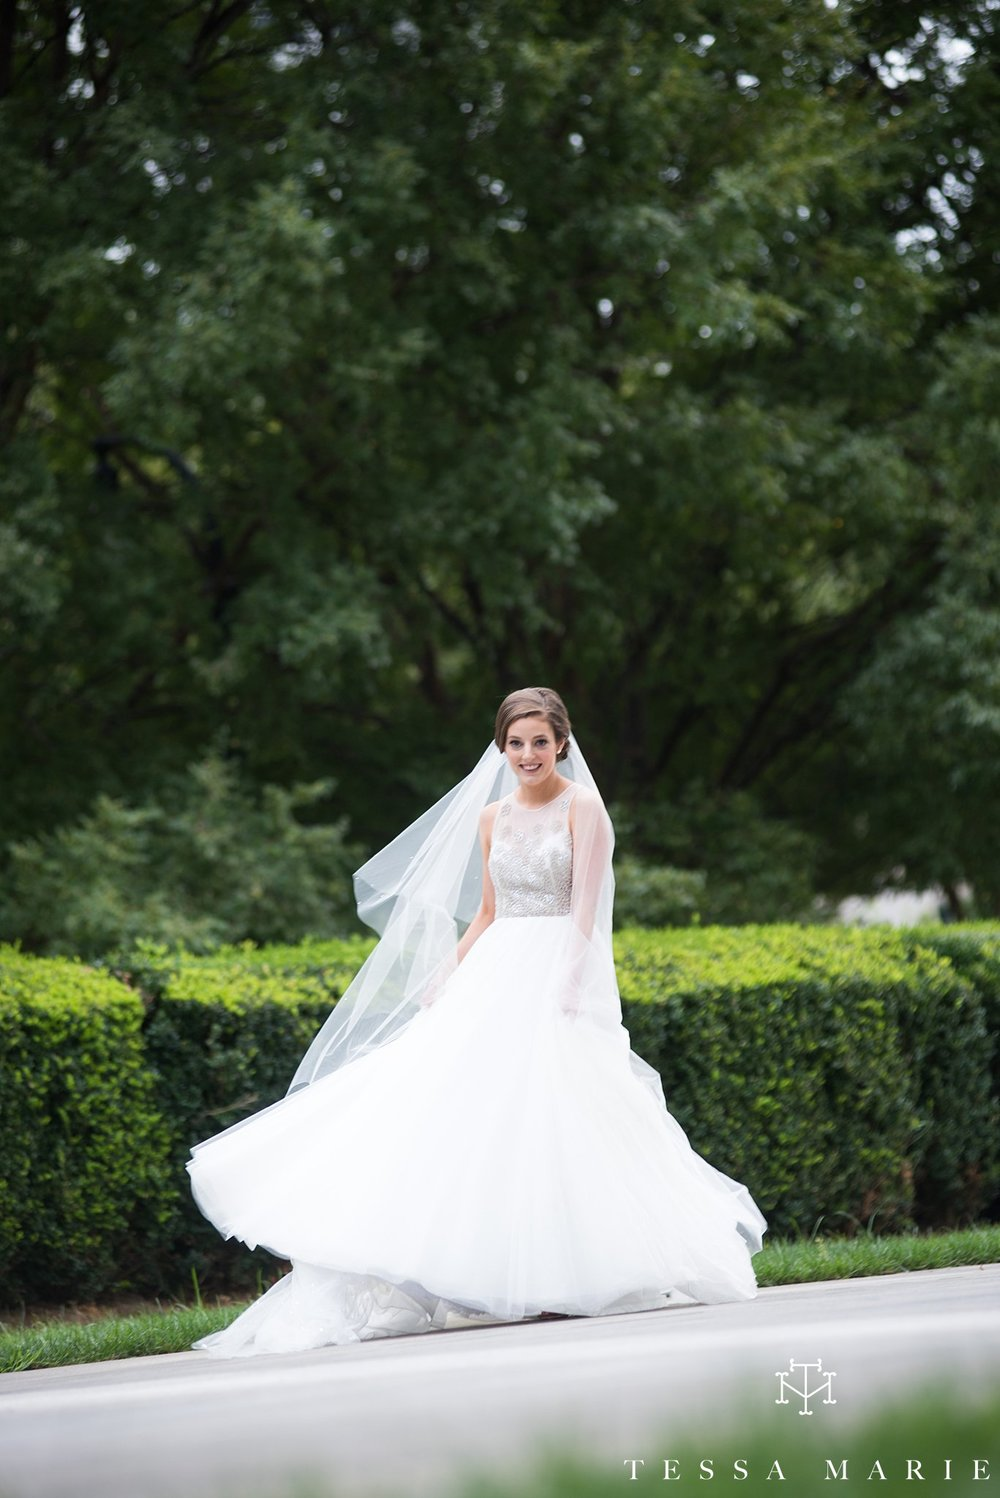 atlanta_wedding_photographer_tessa_marie_weddings_lowes_hotel_peachtree_midtown_fall_wedding_0304.jpg